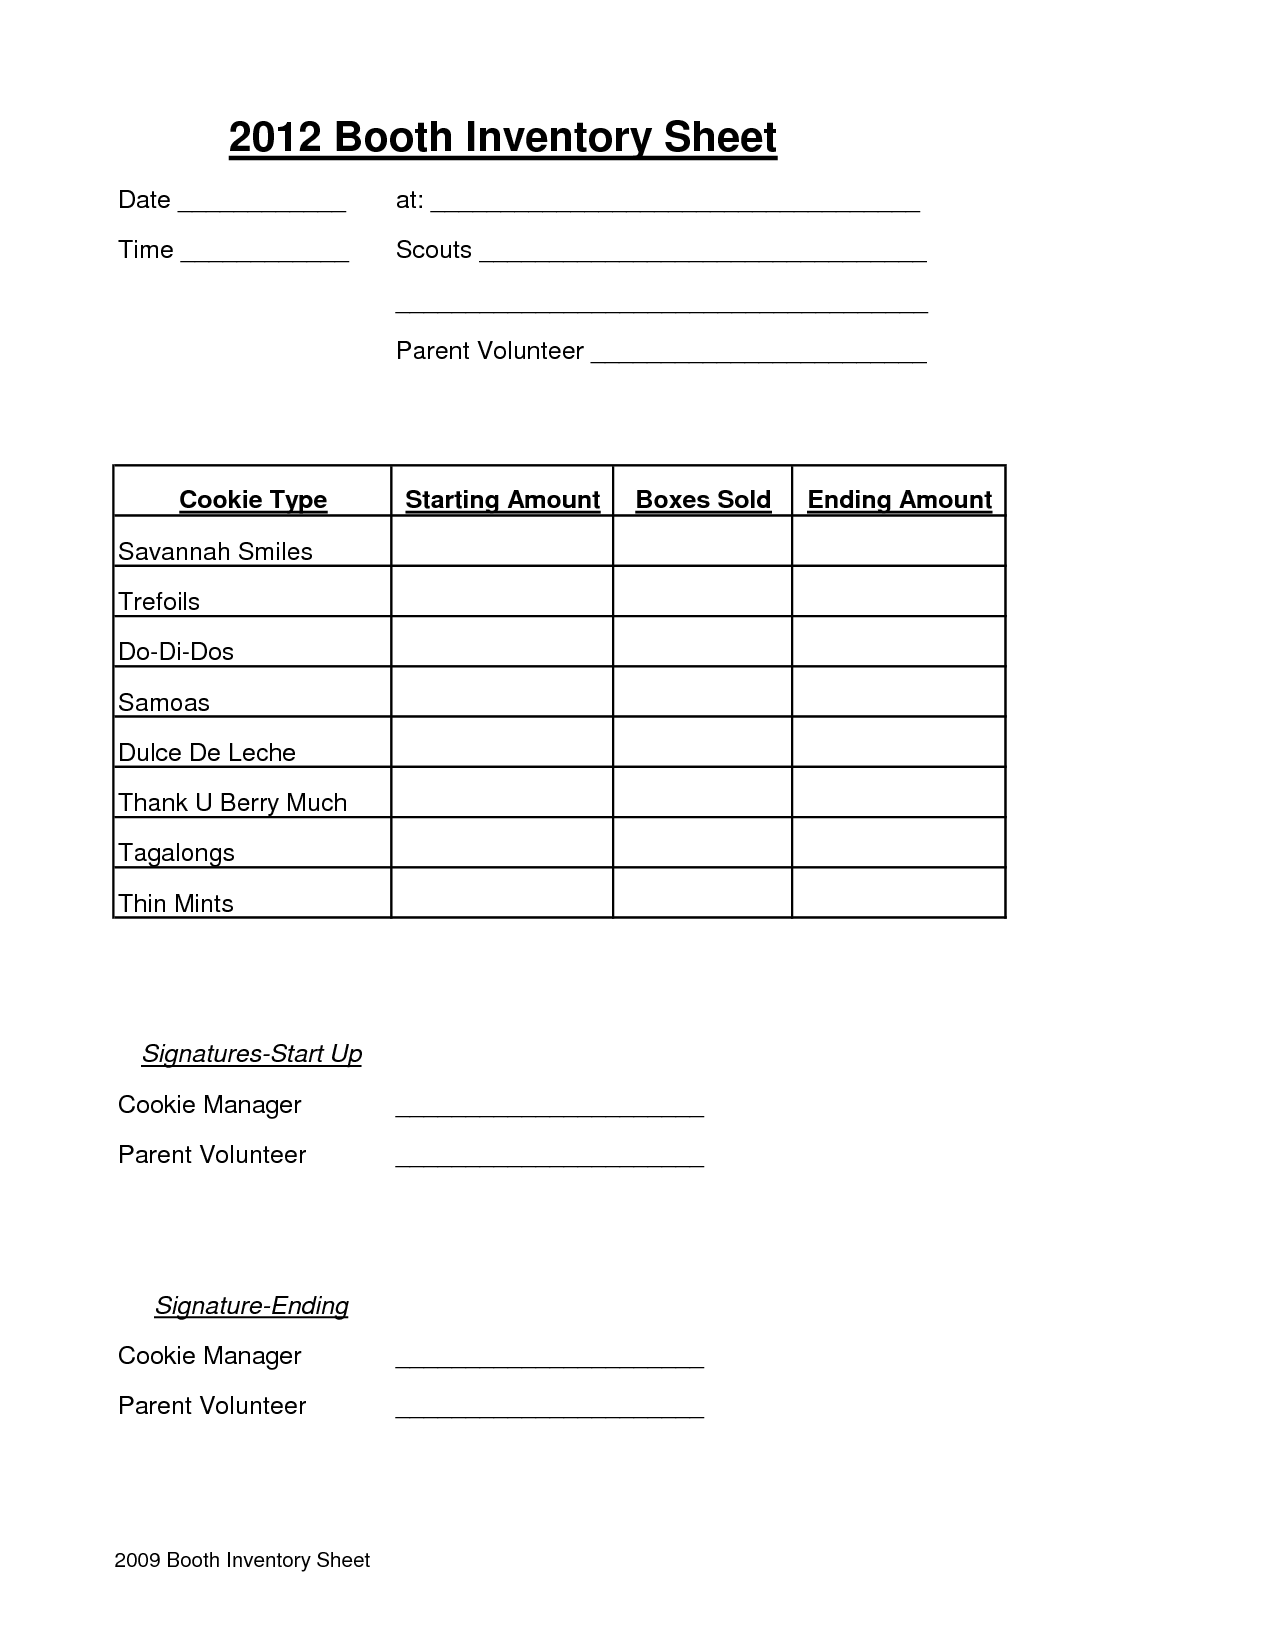 Cookie Booth Inventory Sheet